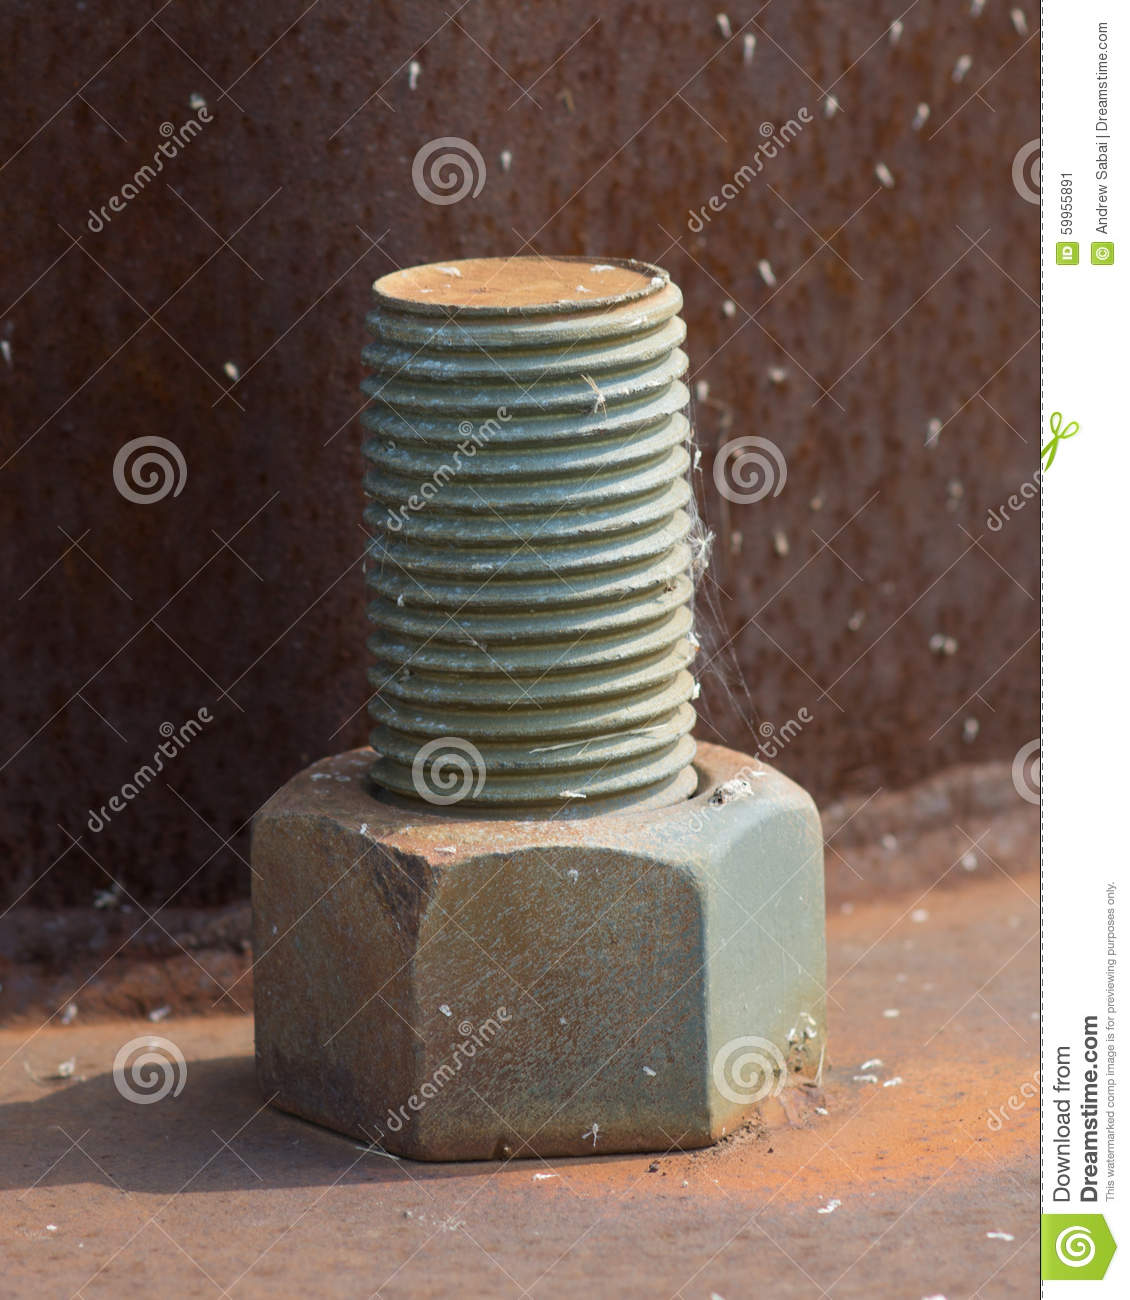 Large Nuts And Bolts : Large bolt and nut stock photo image